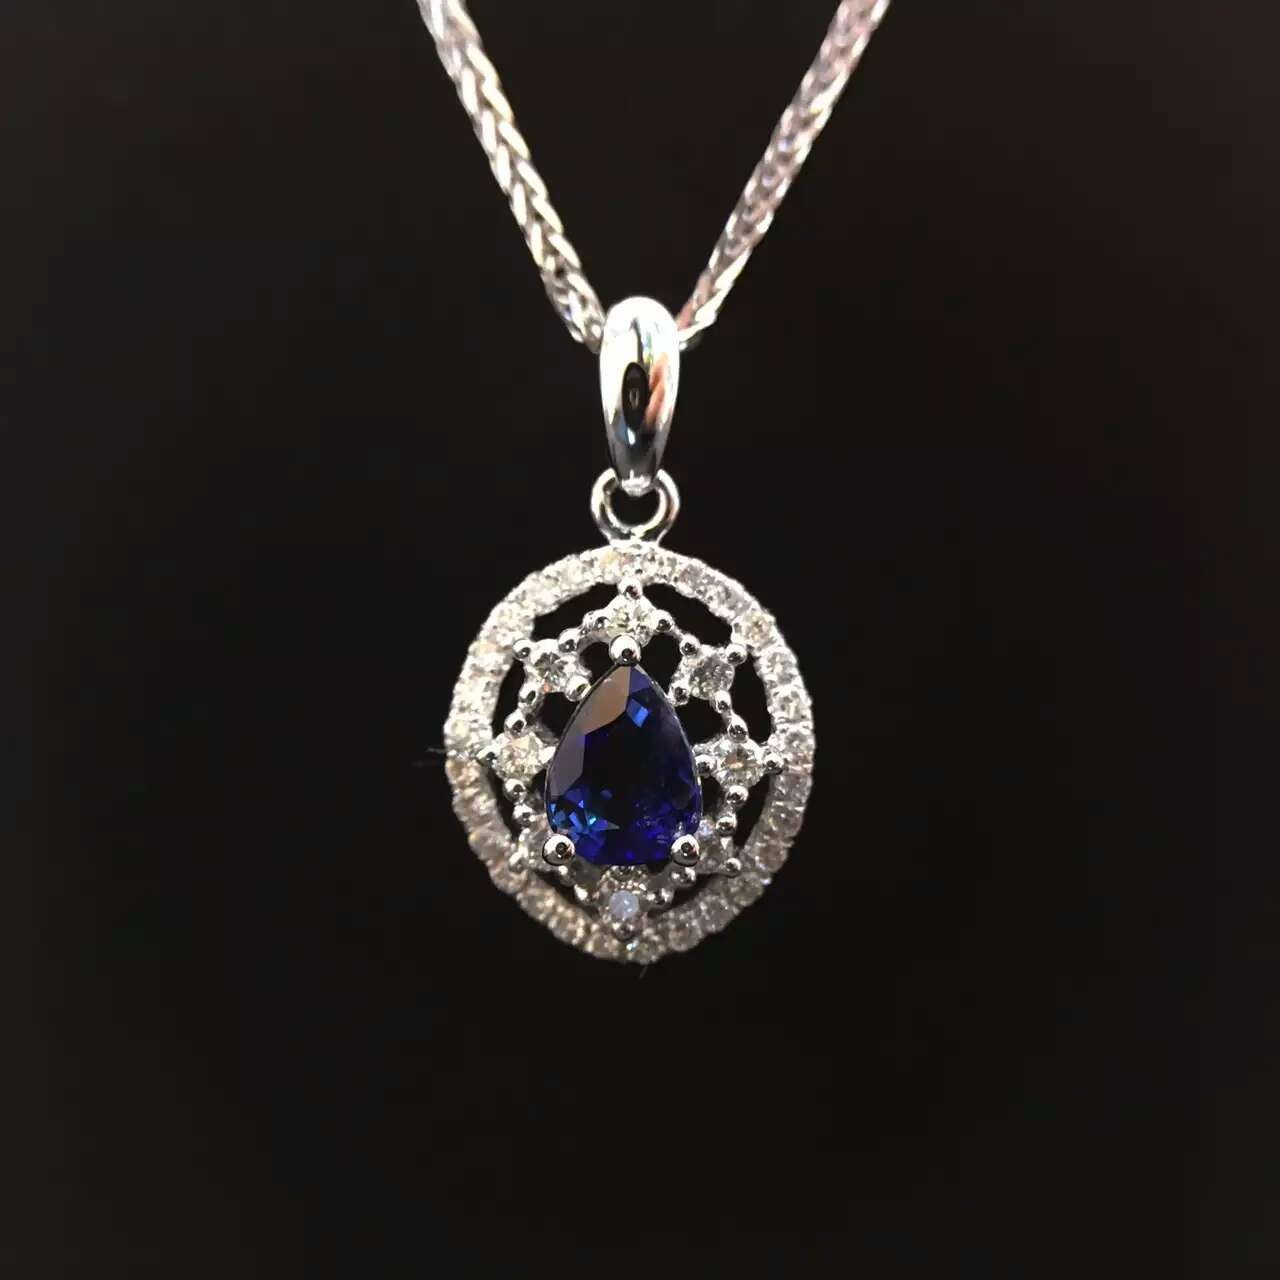 0 602ct 0 285ct 18K White Gold Natural Sapphire and Pendant font b Necklace b font